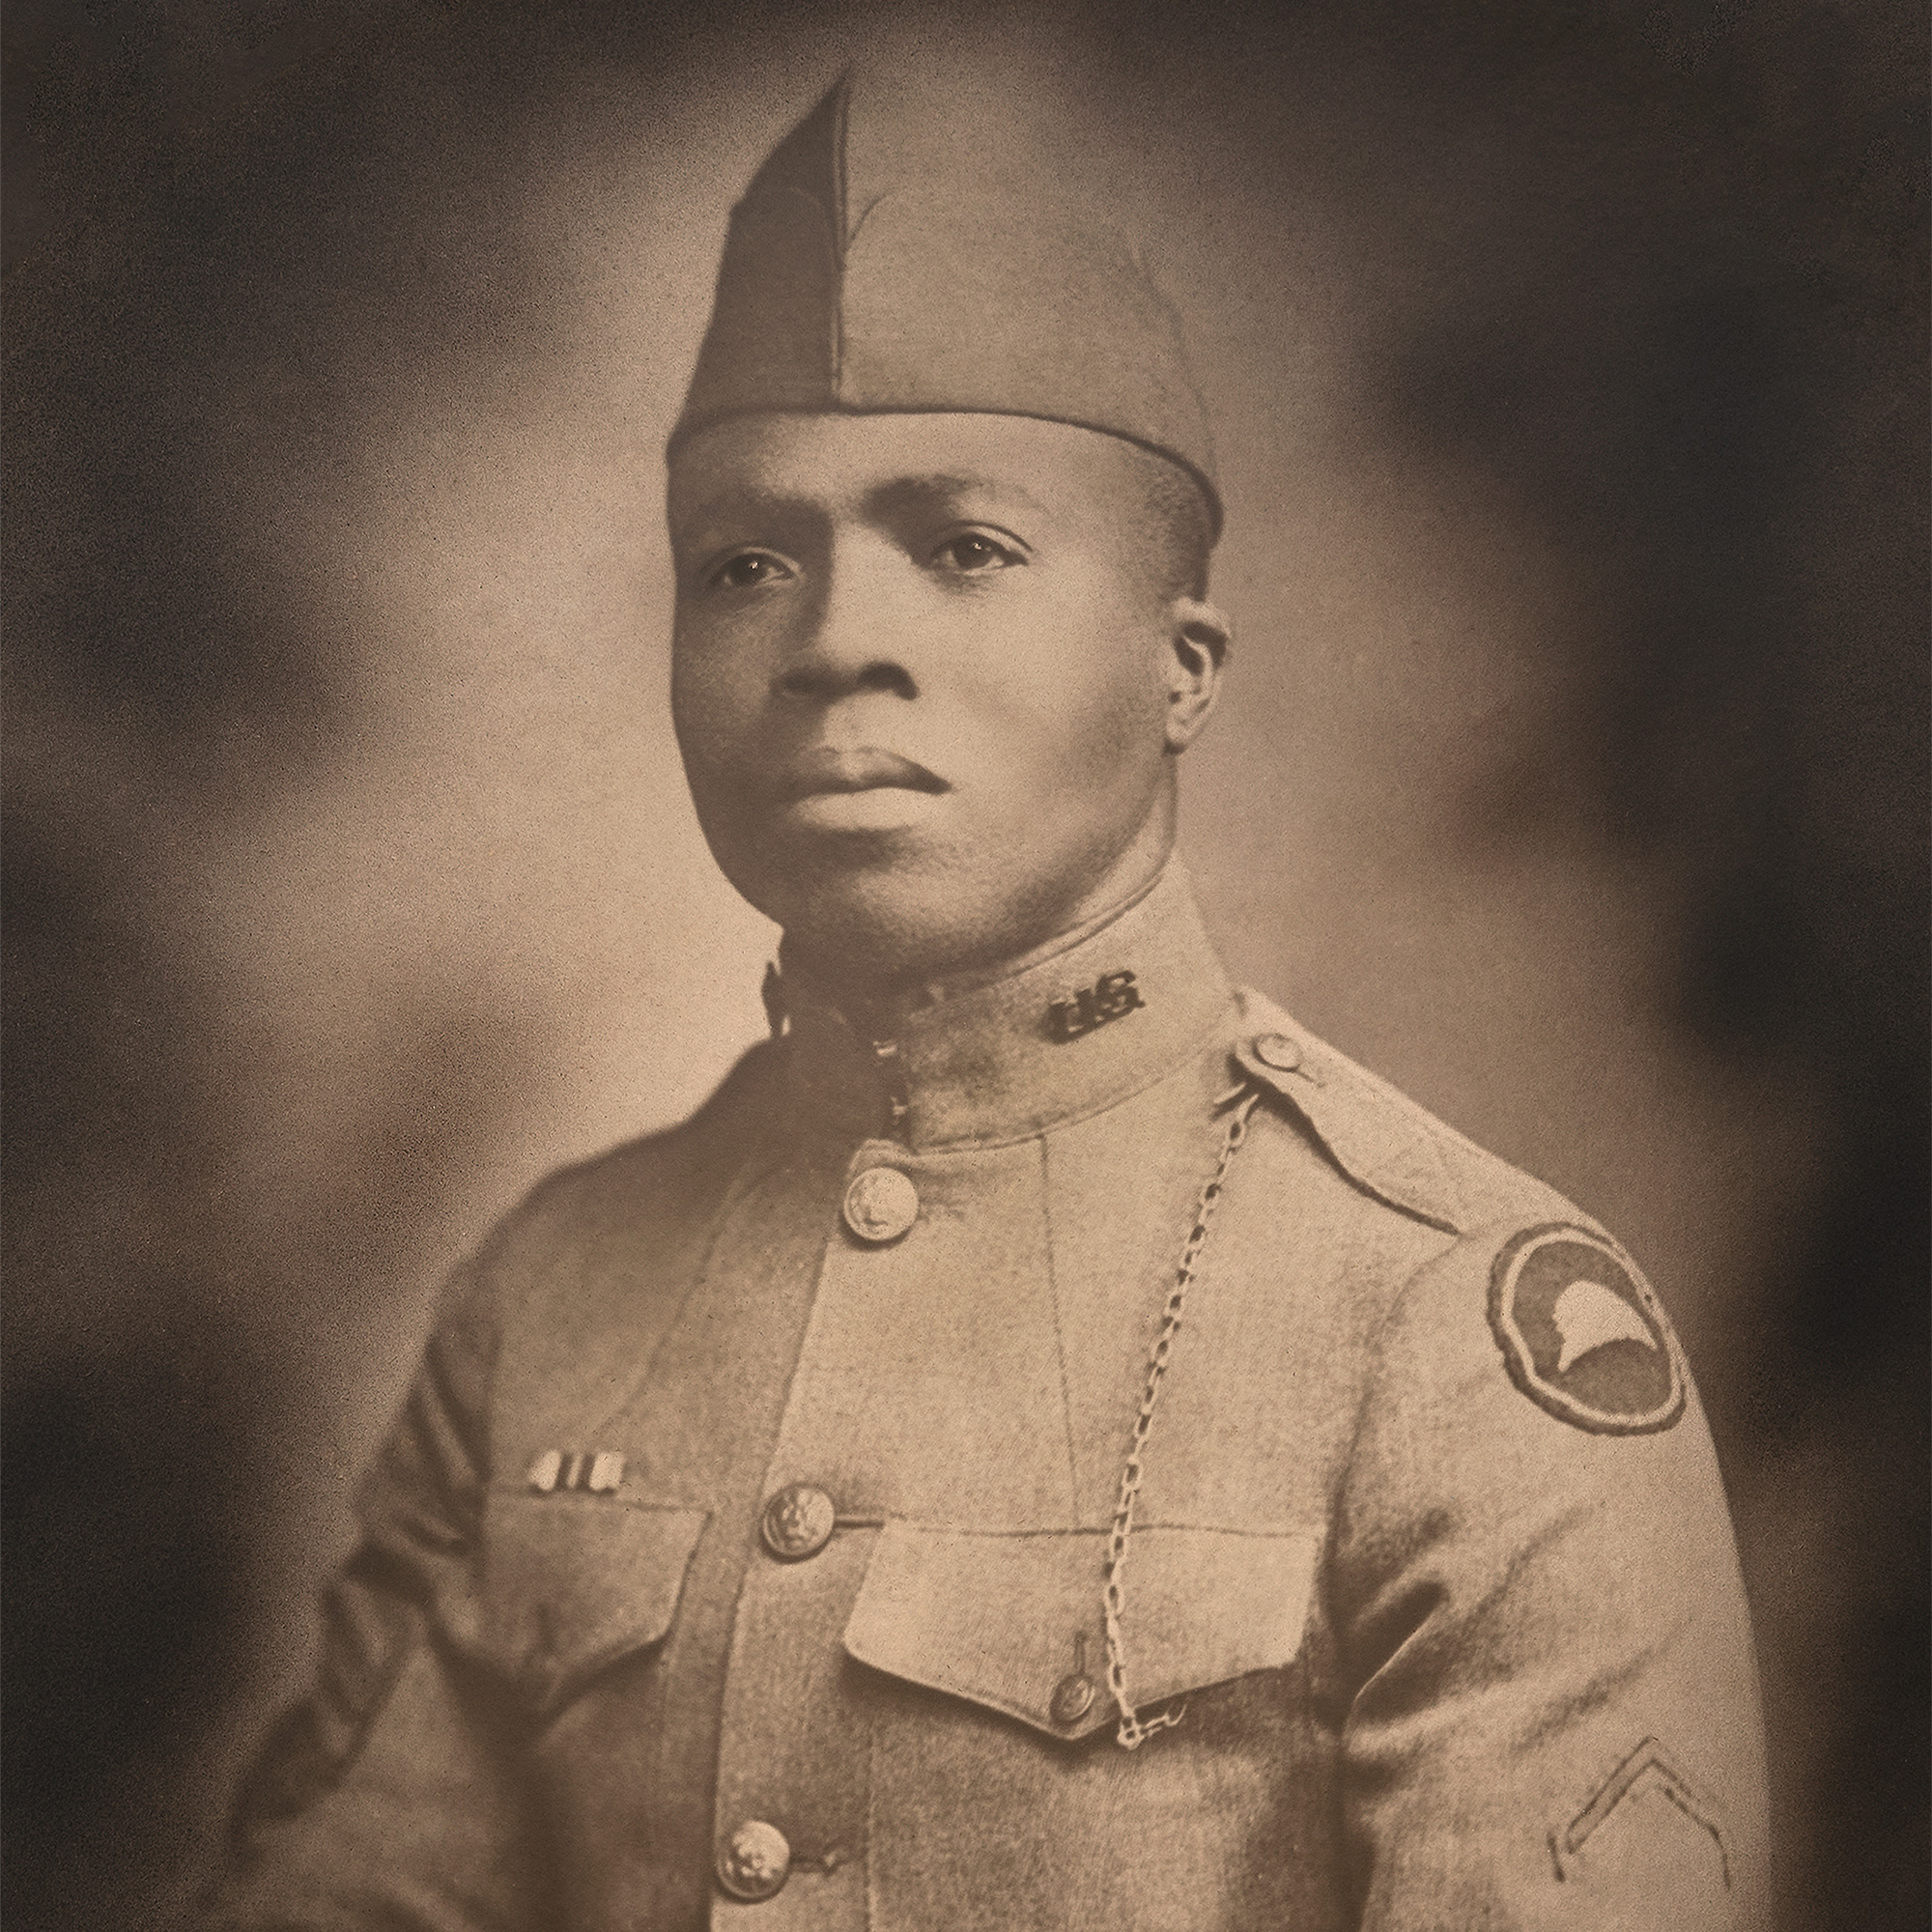 WWI Veteran of Florence County, Sgt. Spears